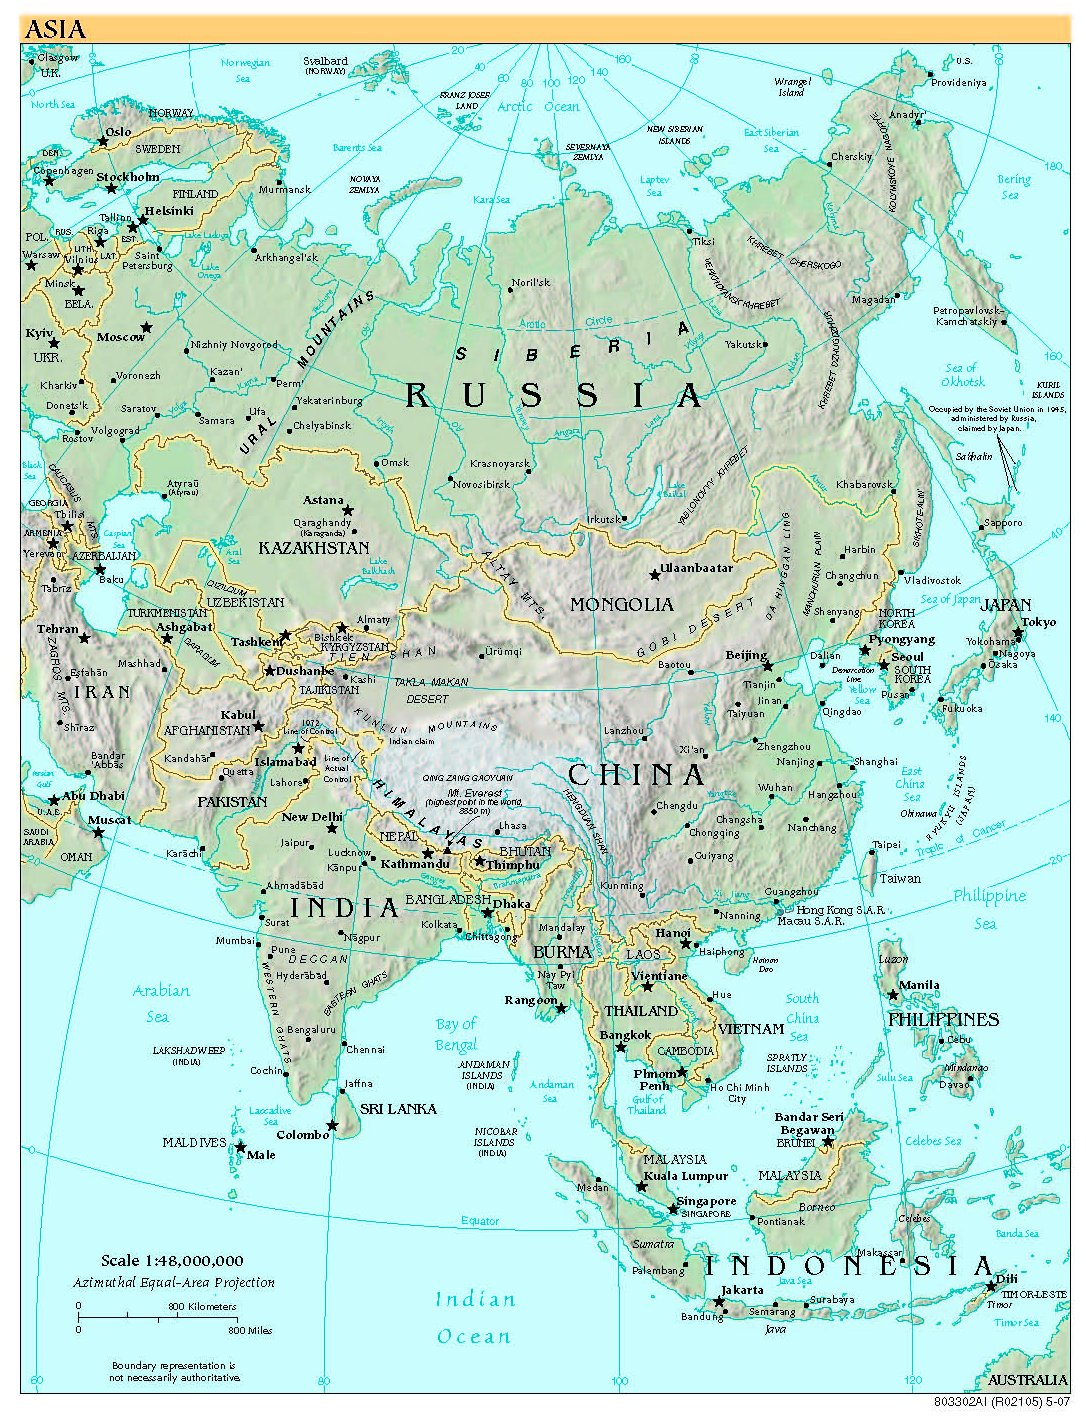 Free High Resolution Map of Asia Download World Map High Resolution on wallpaper desktop world map, home world map, high quality world map, word world map, html world map, the best vector world map,